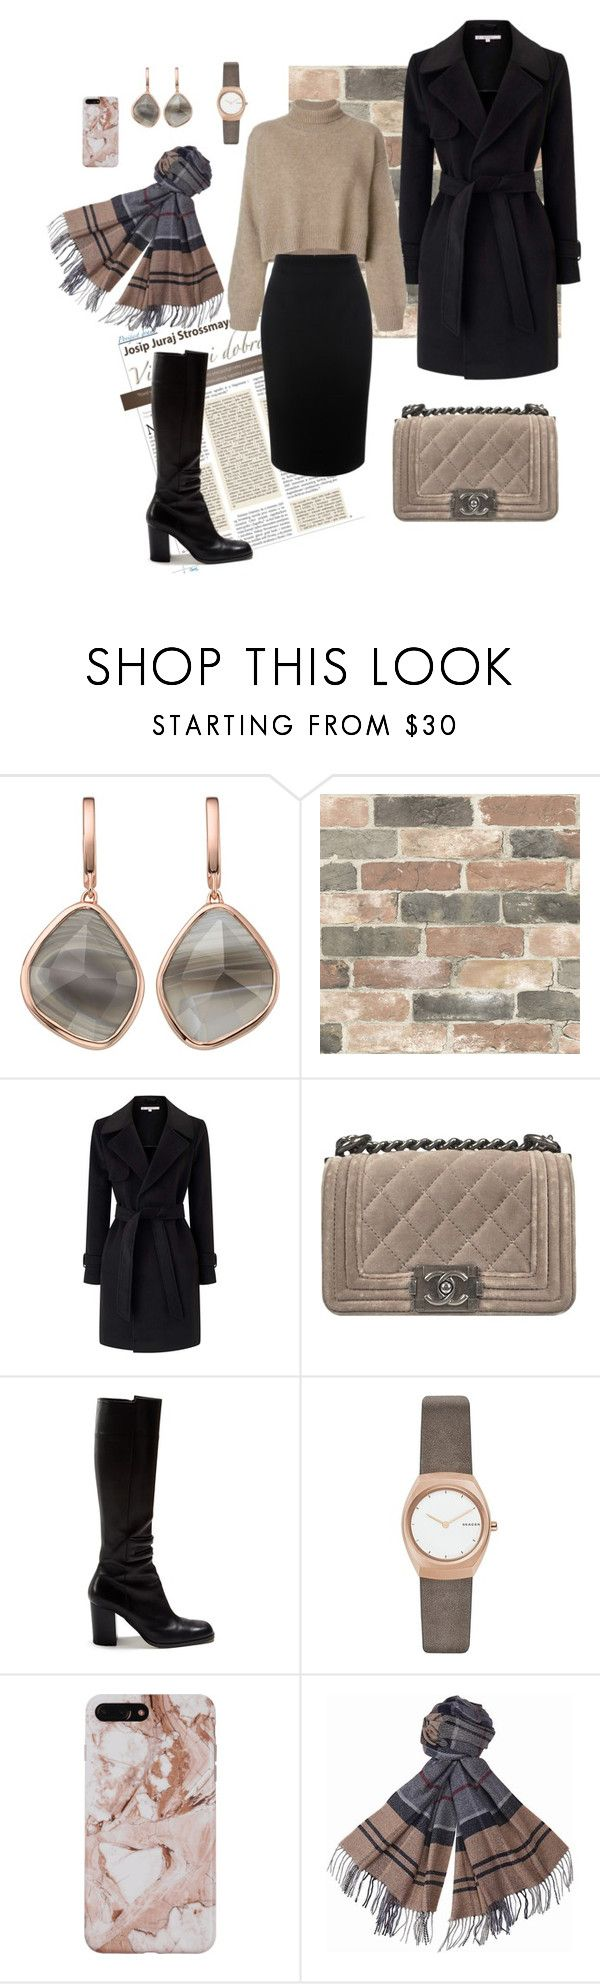 """""""nude autumn"""" by alexia-engelhardt on Polyvore featuring Monica Vinader, Wall Pops!, Miss Selfridge, Chanel, Loewe, Skagen, Barbour and Alexander McQueen"""